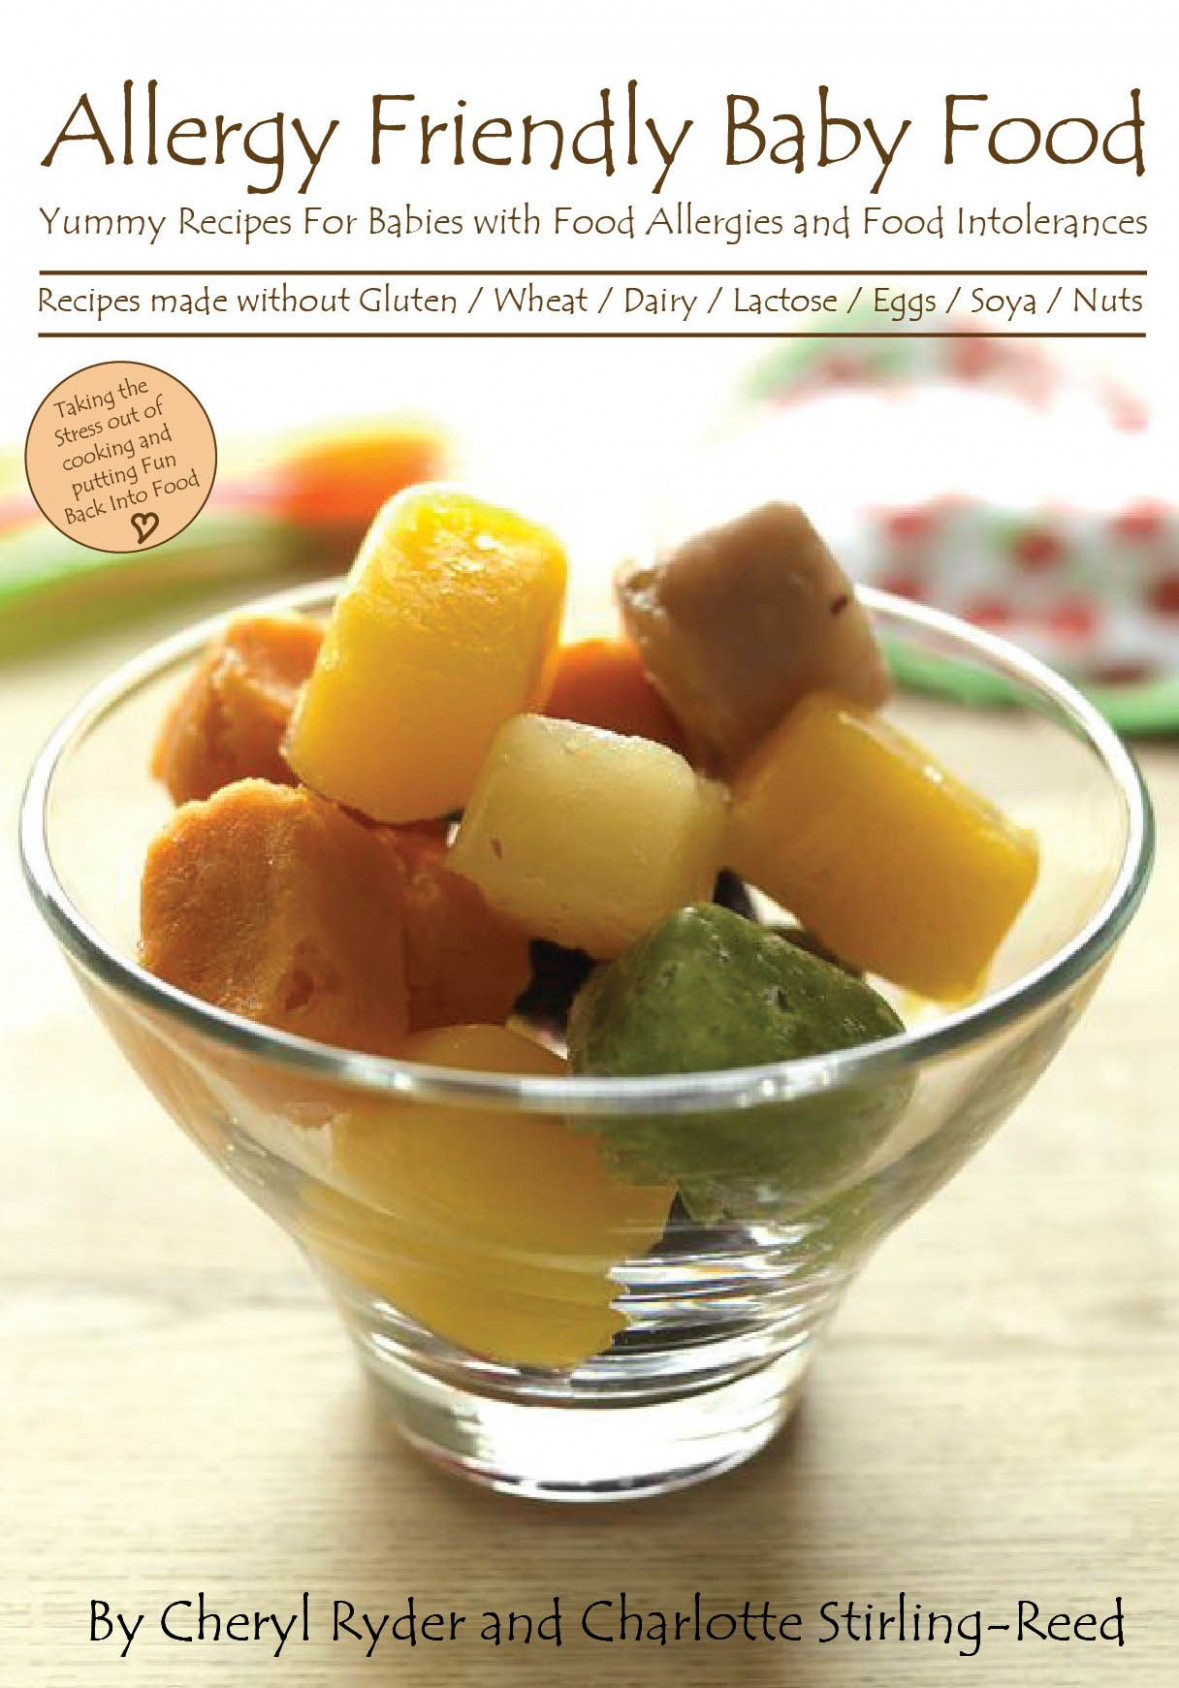 Allergy Friendly Baby Food Recipes | All Things Food Allergy ..